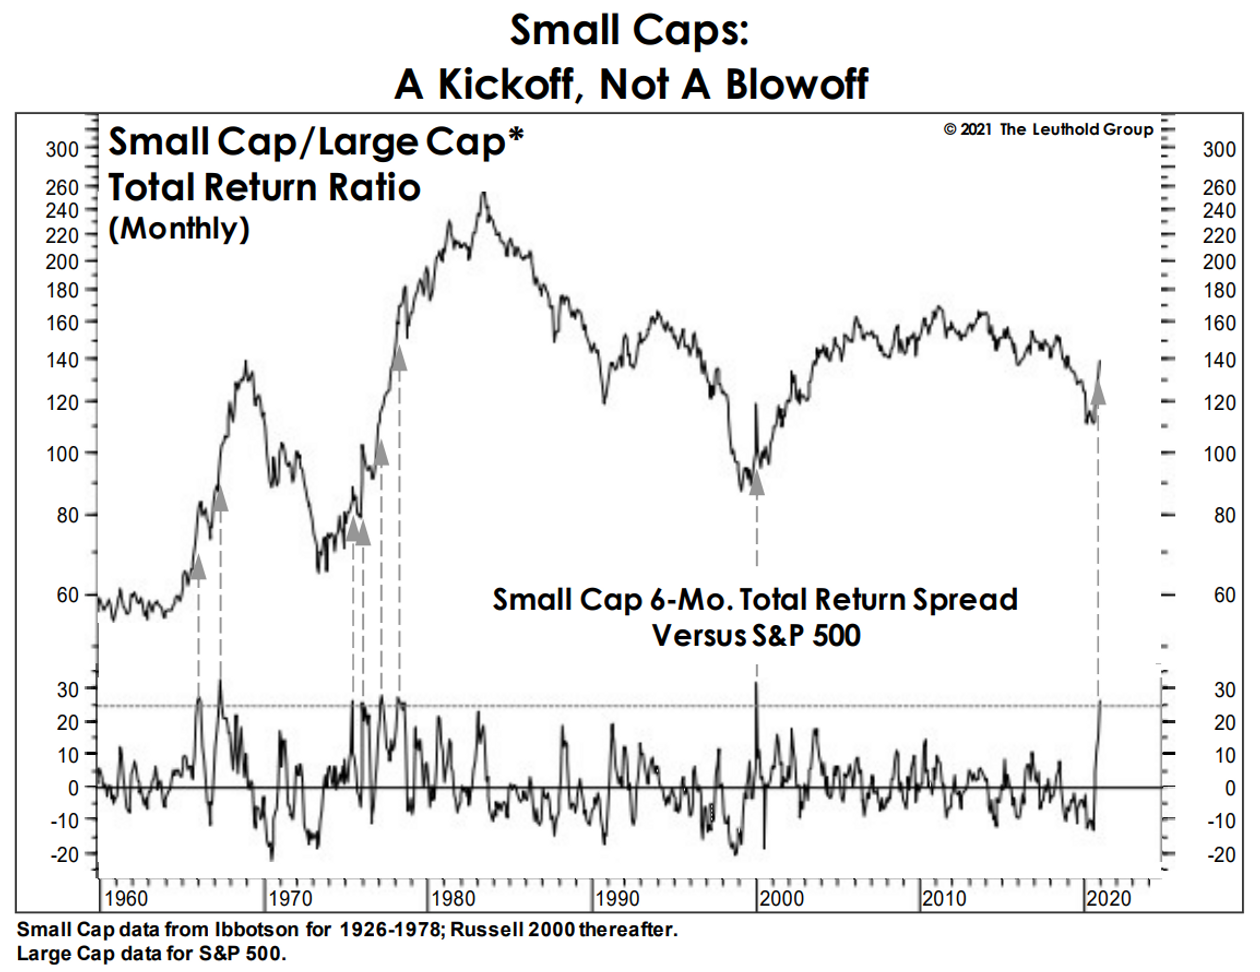 Here's An ETF to Play The Small Cap Rally and Value 1